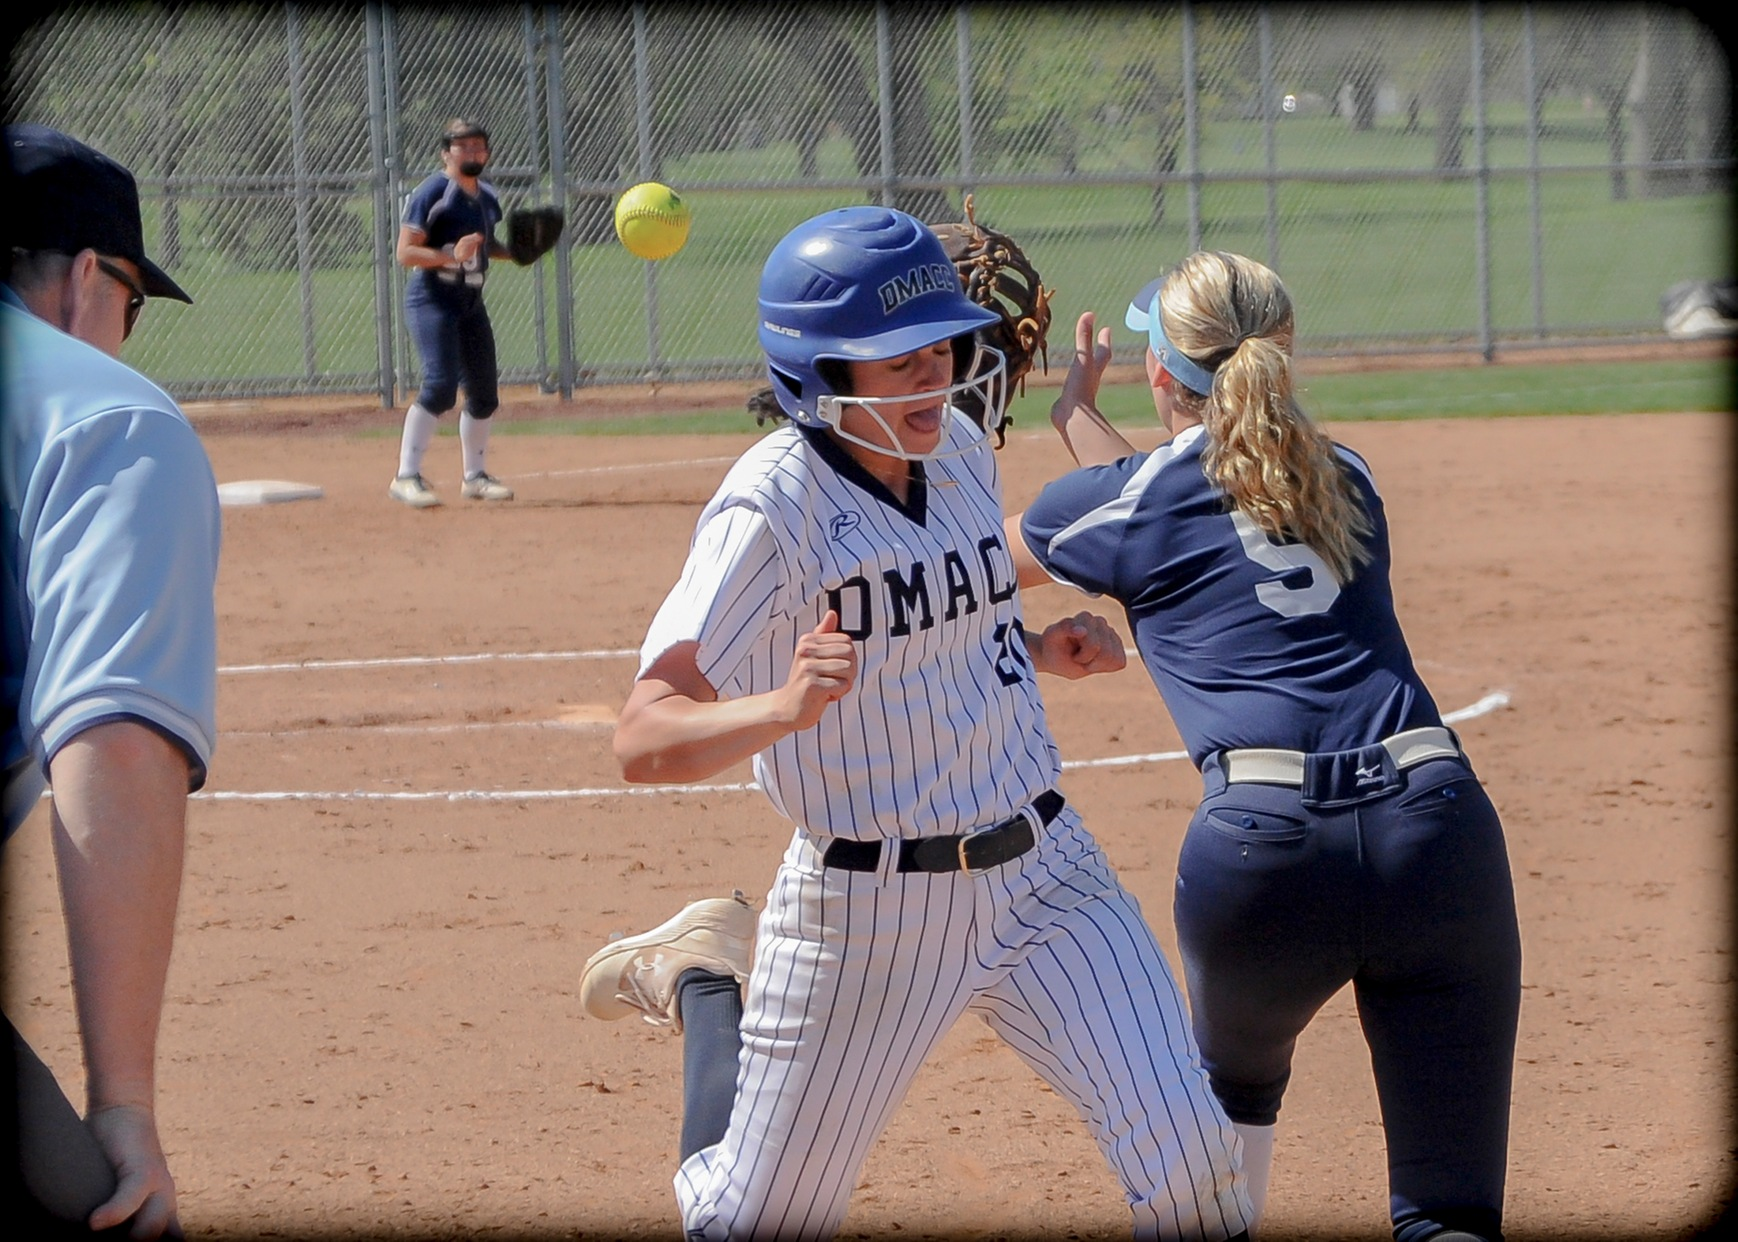 DMACC softball team beats KCC, falls to Phoenix CC in NJCAA Division II National Championship